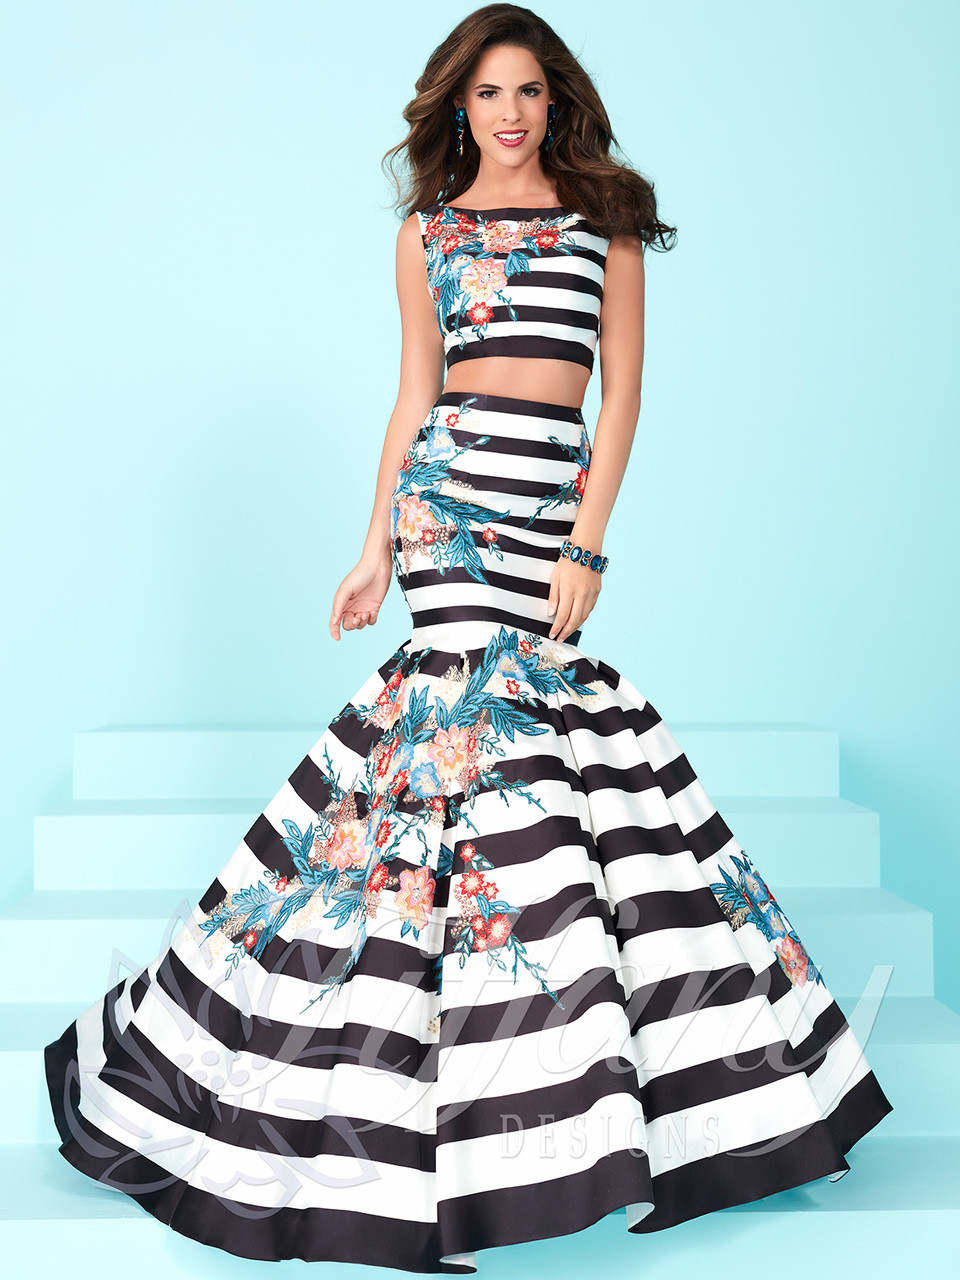 71194d85616a ... prom dress with stripes and floral prints size 8 by tiffany designs  16250. Free shipping